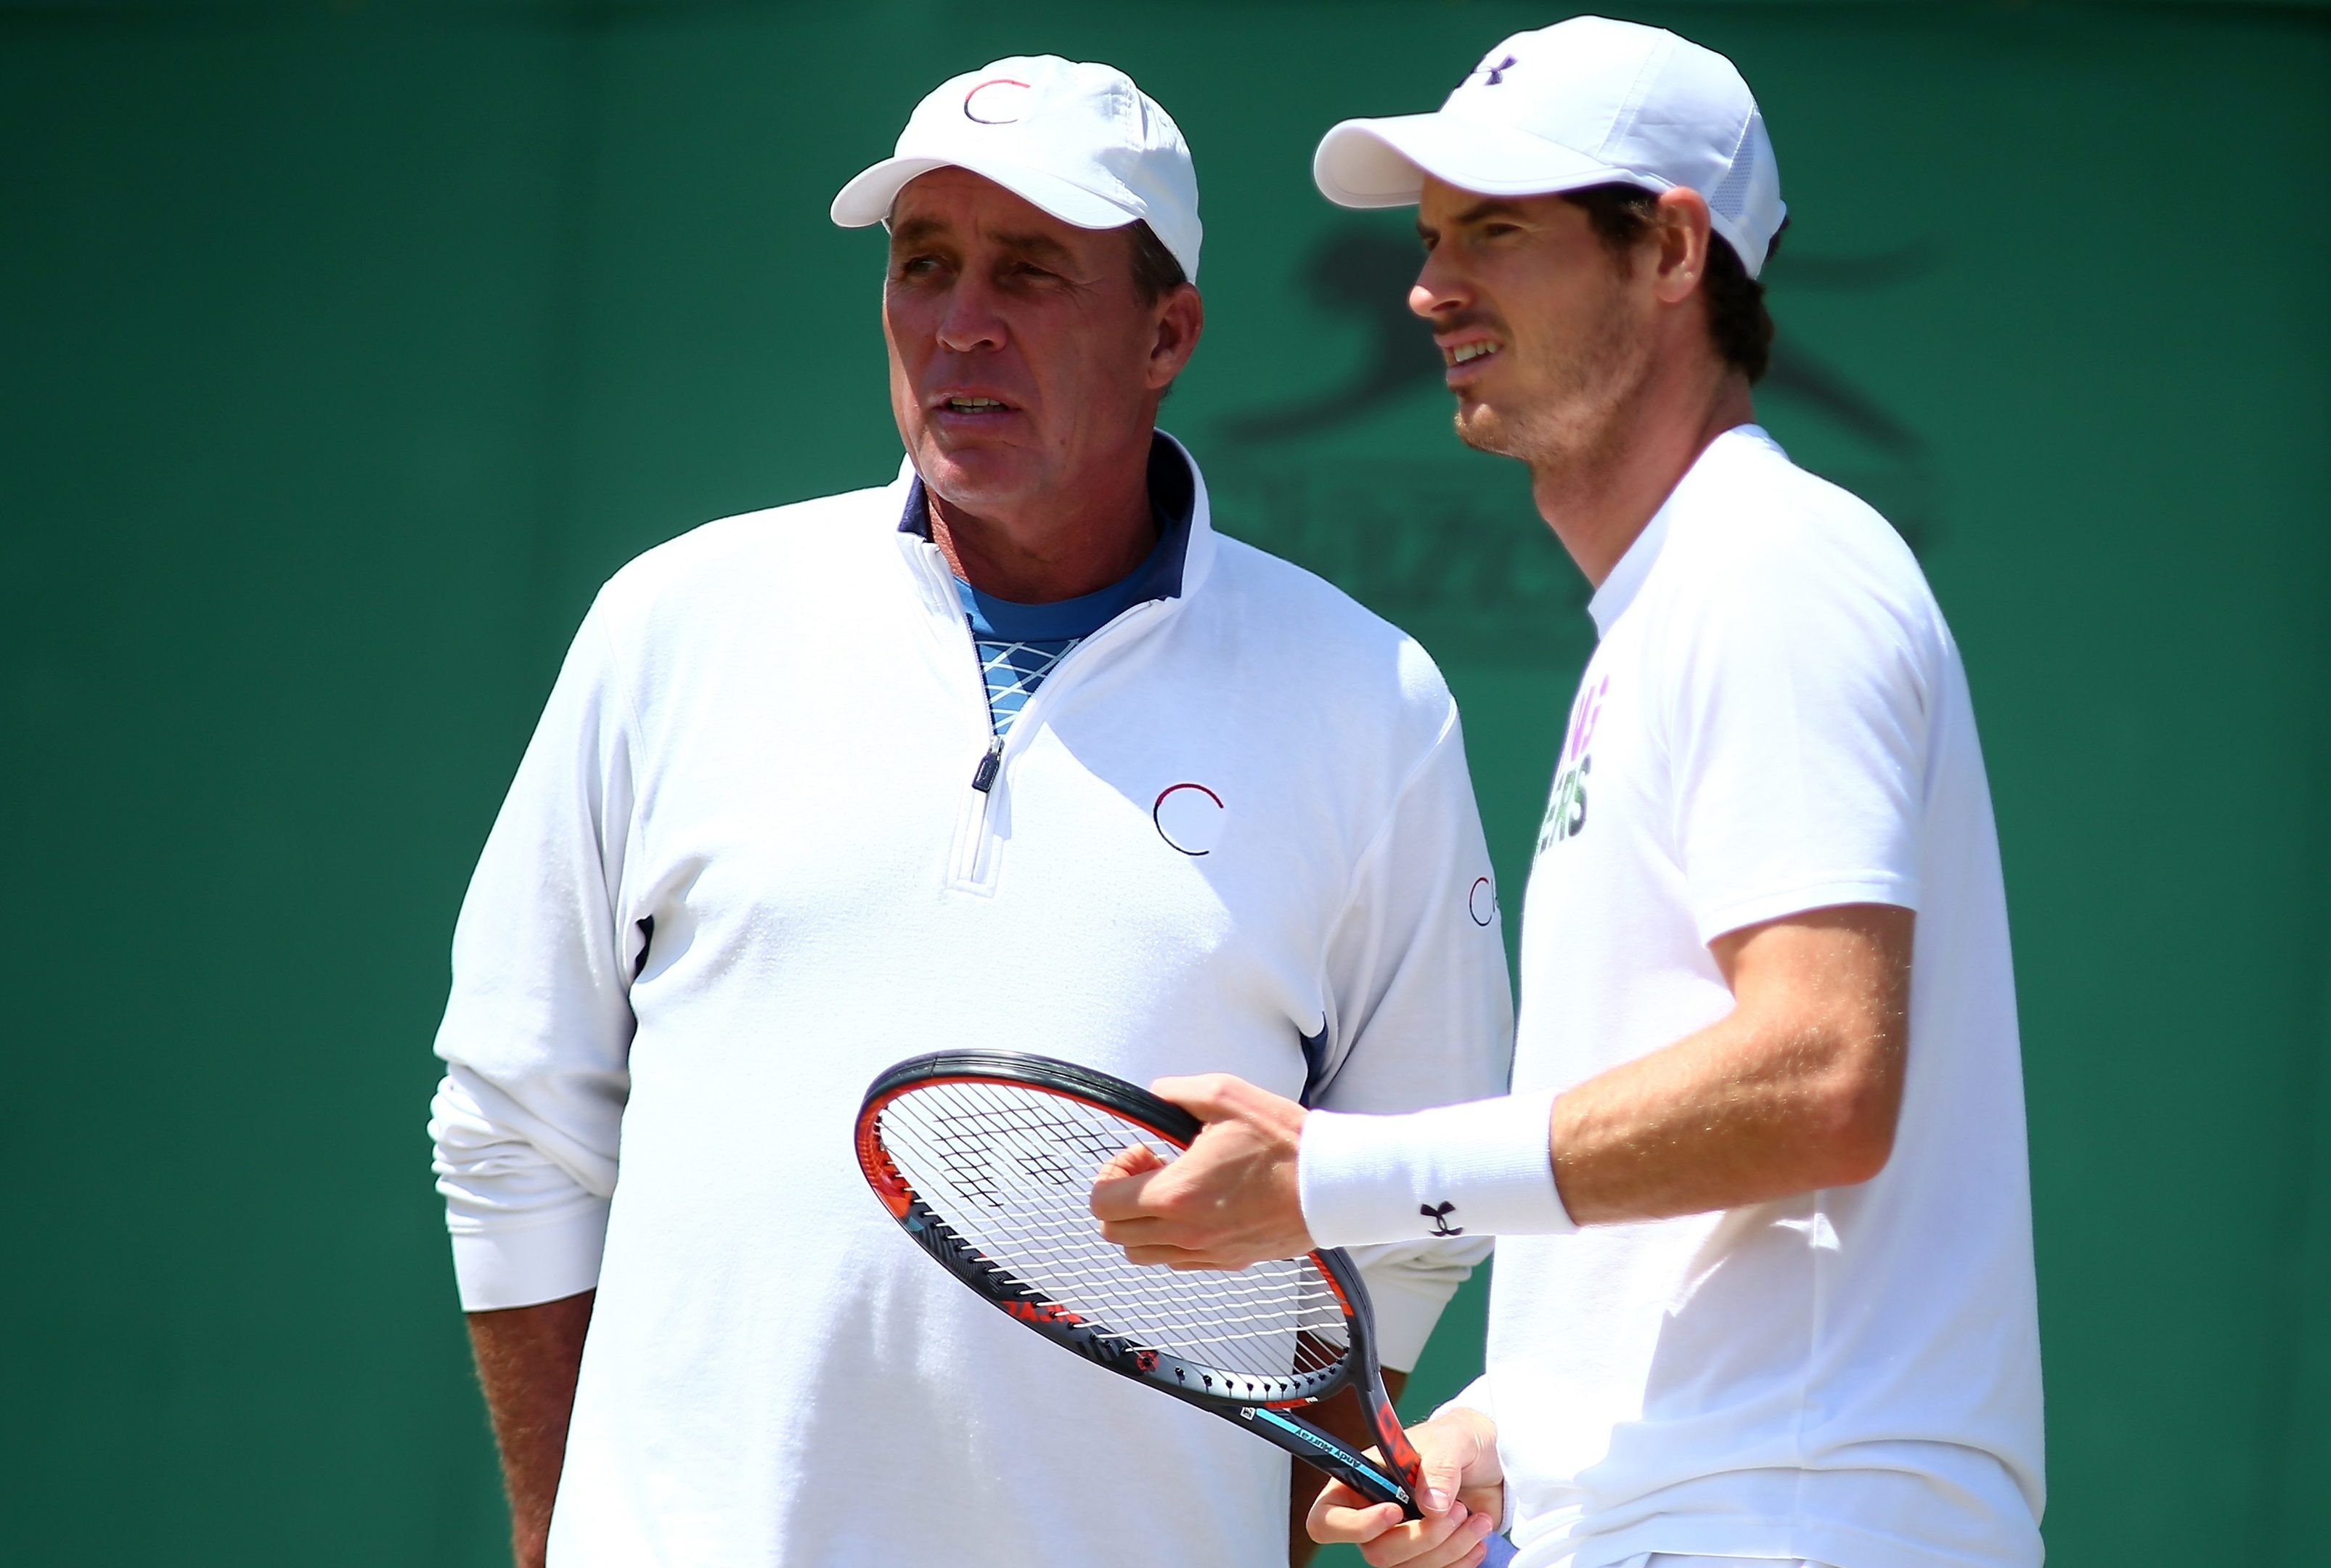 Andy Murray gets the benefit of Ivan Lendl's wisdom.